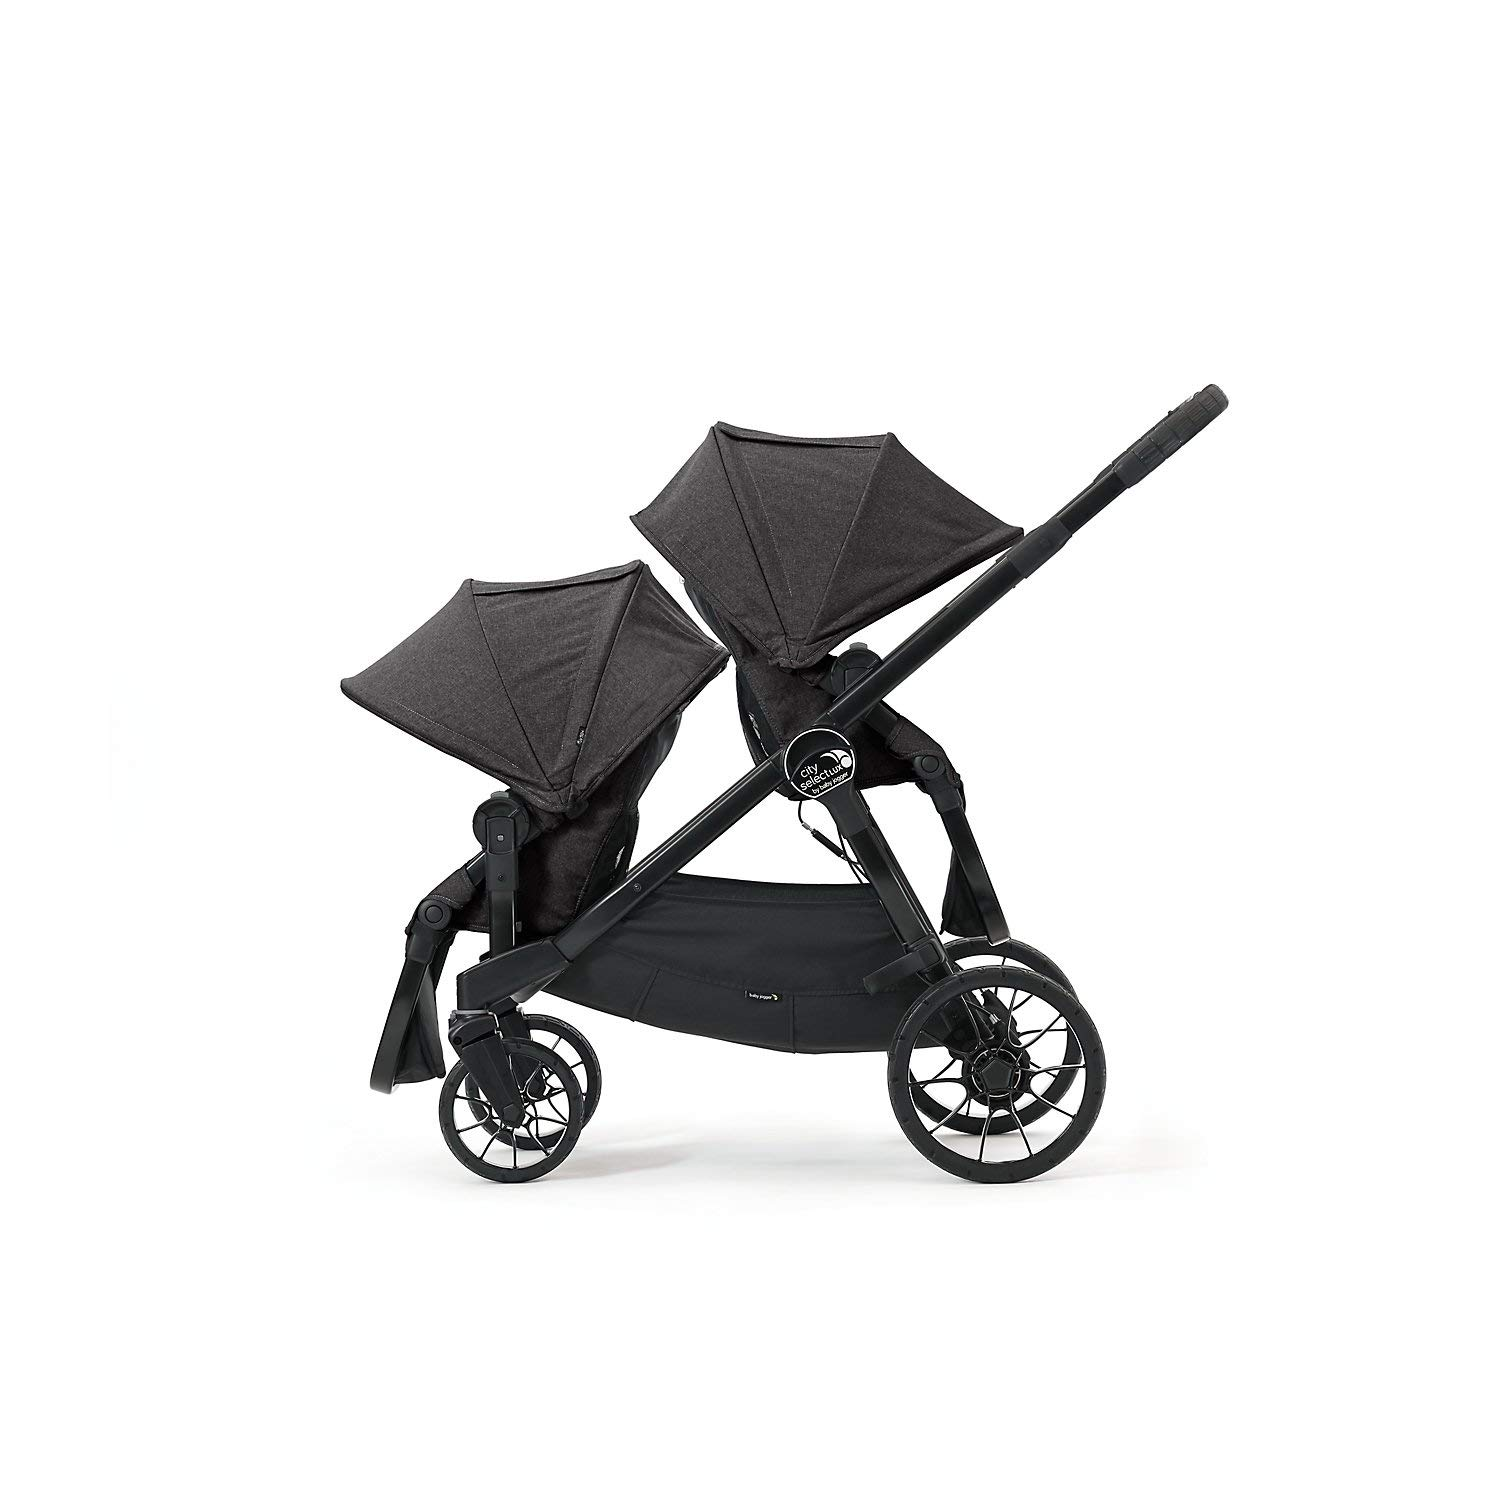 Baby Jogger City Select LUX Double Stroller, Granite by Baby Jogger